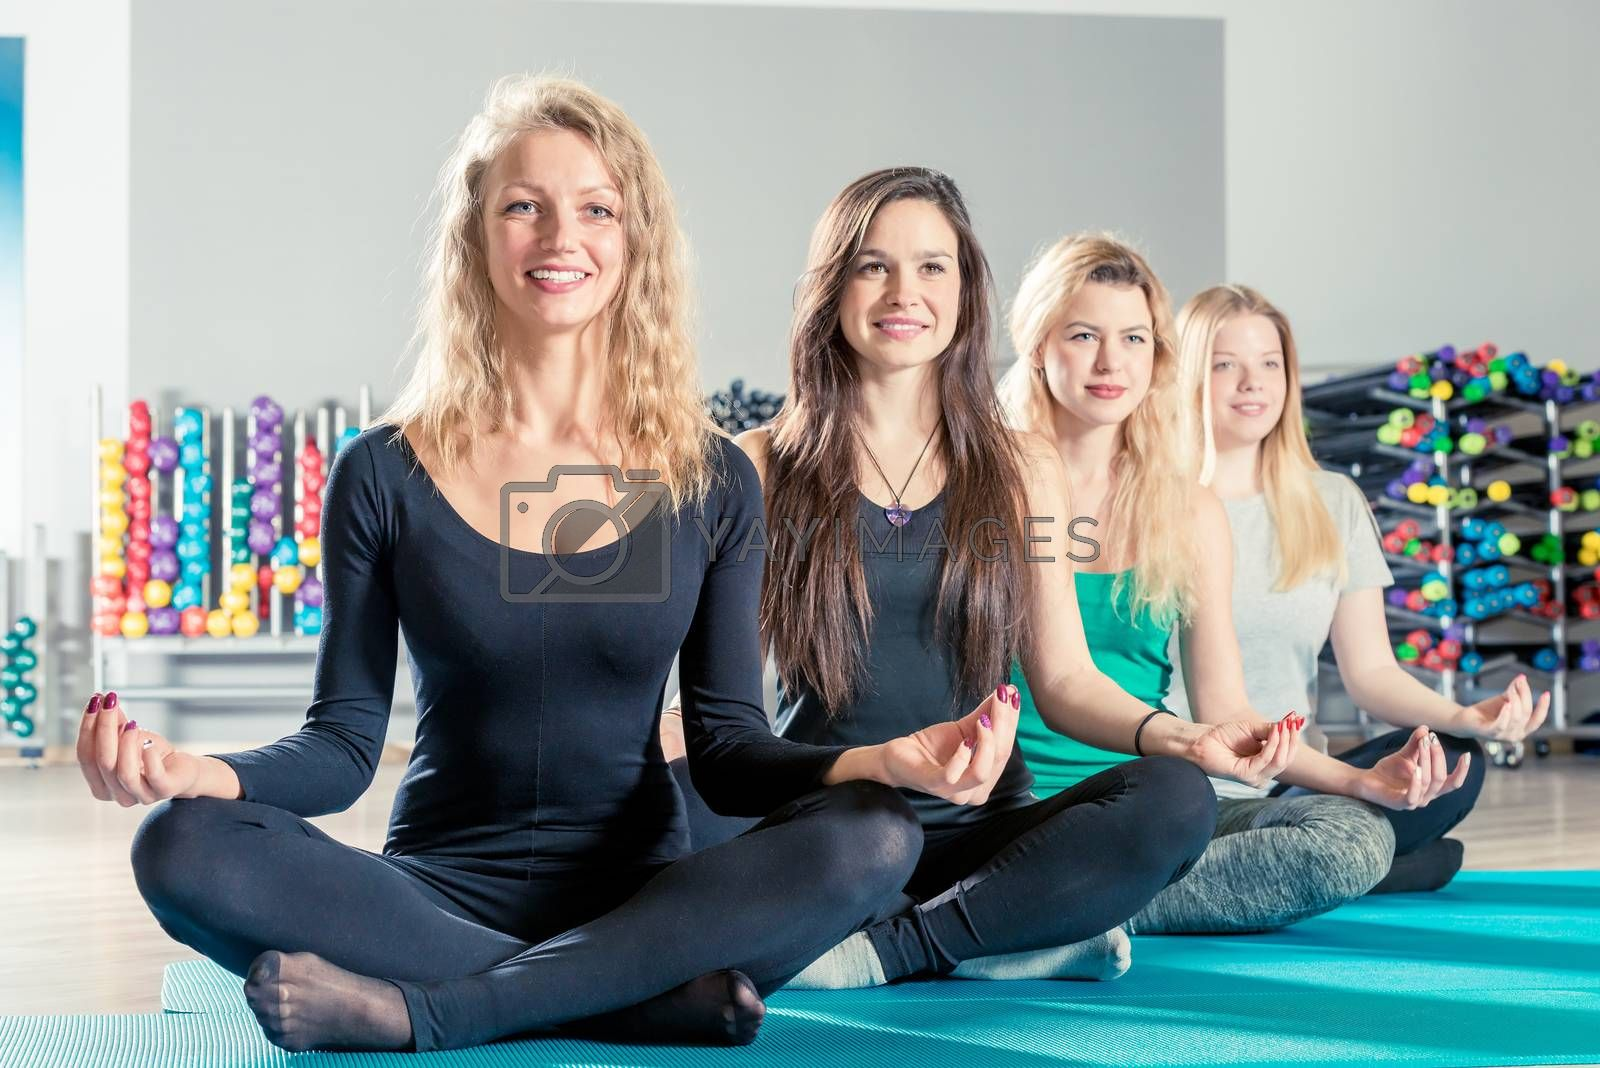 charming girls sit in a lotus position during a yoga training session in the gym